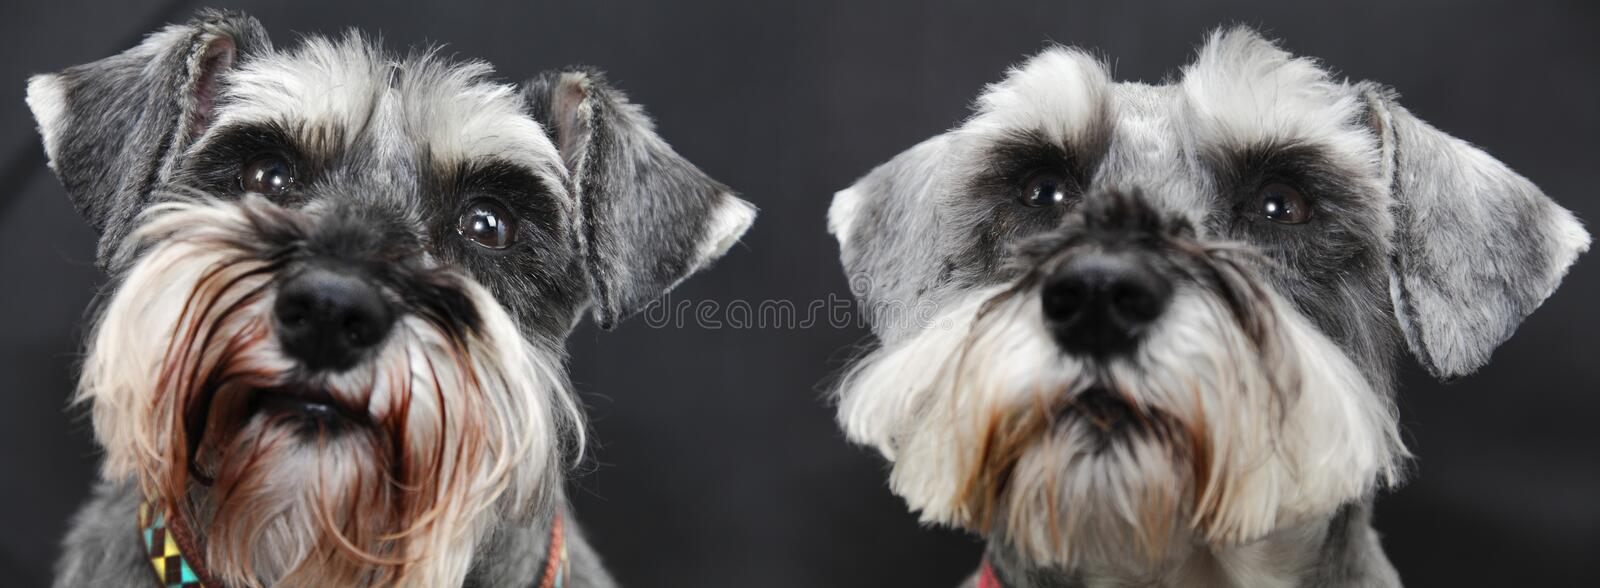 Pares de cães do Schnauzer fotos de stock